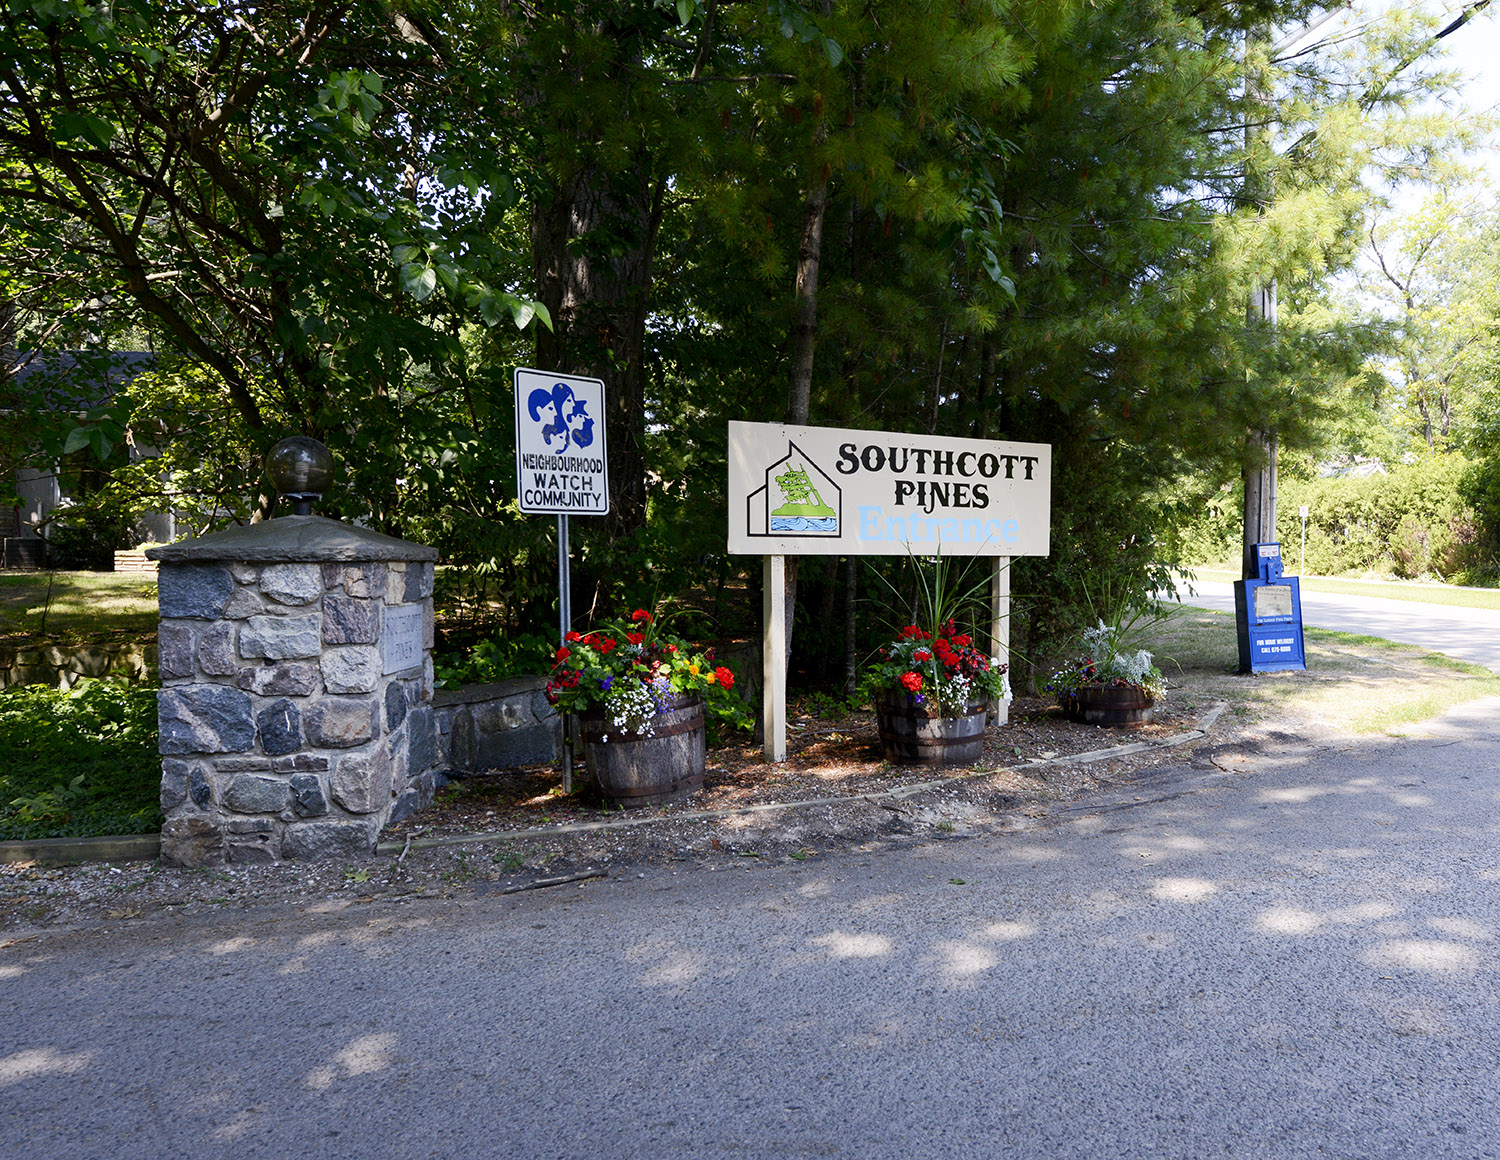 18 Pines Entry